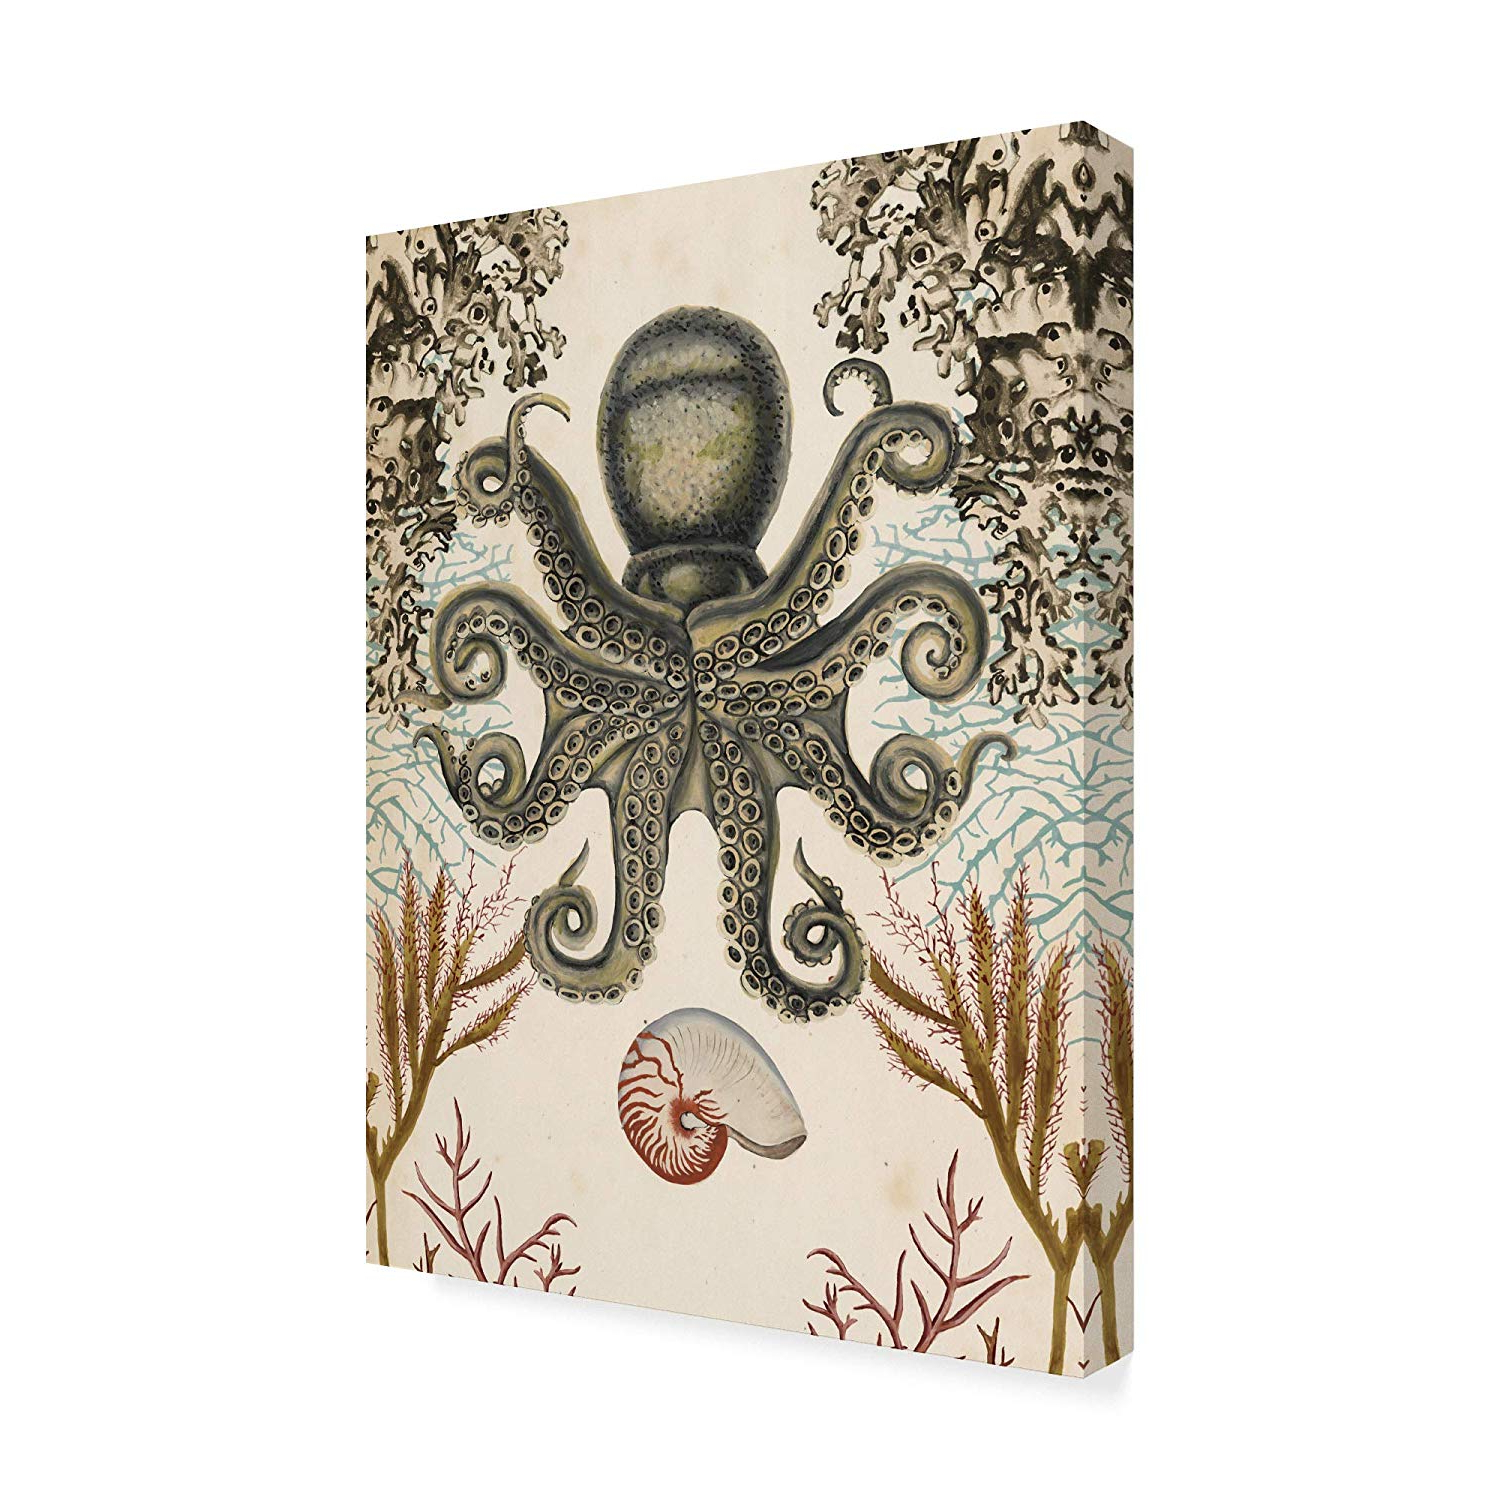 Wall Decor By World Menagerie Intended For Well Known Amazon: Trademark Fine Art Antiquarian Menagerie Octopus (View 11 of 20)